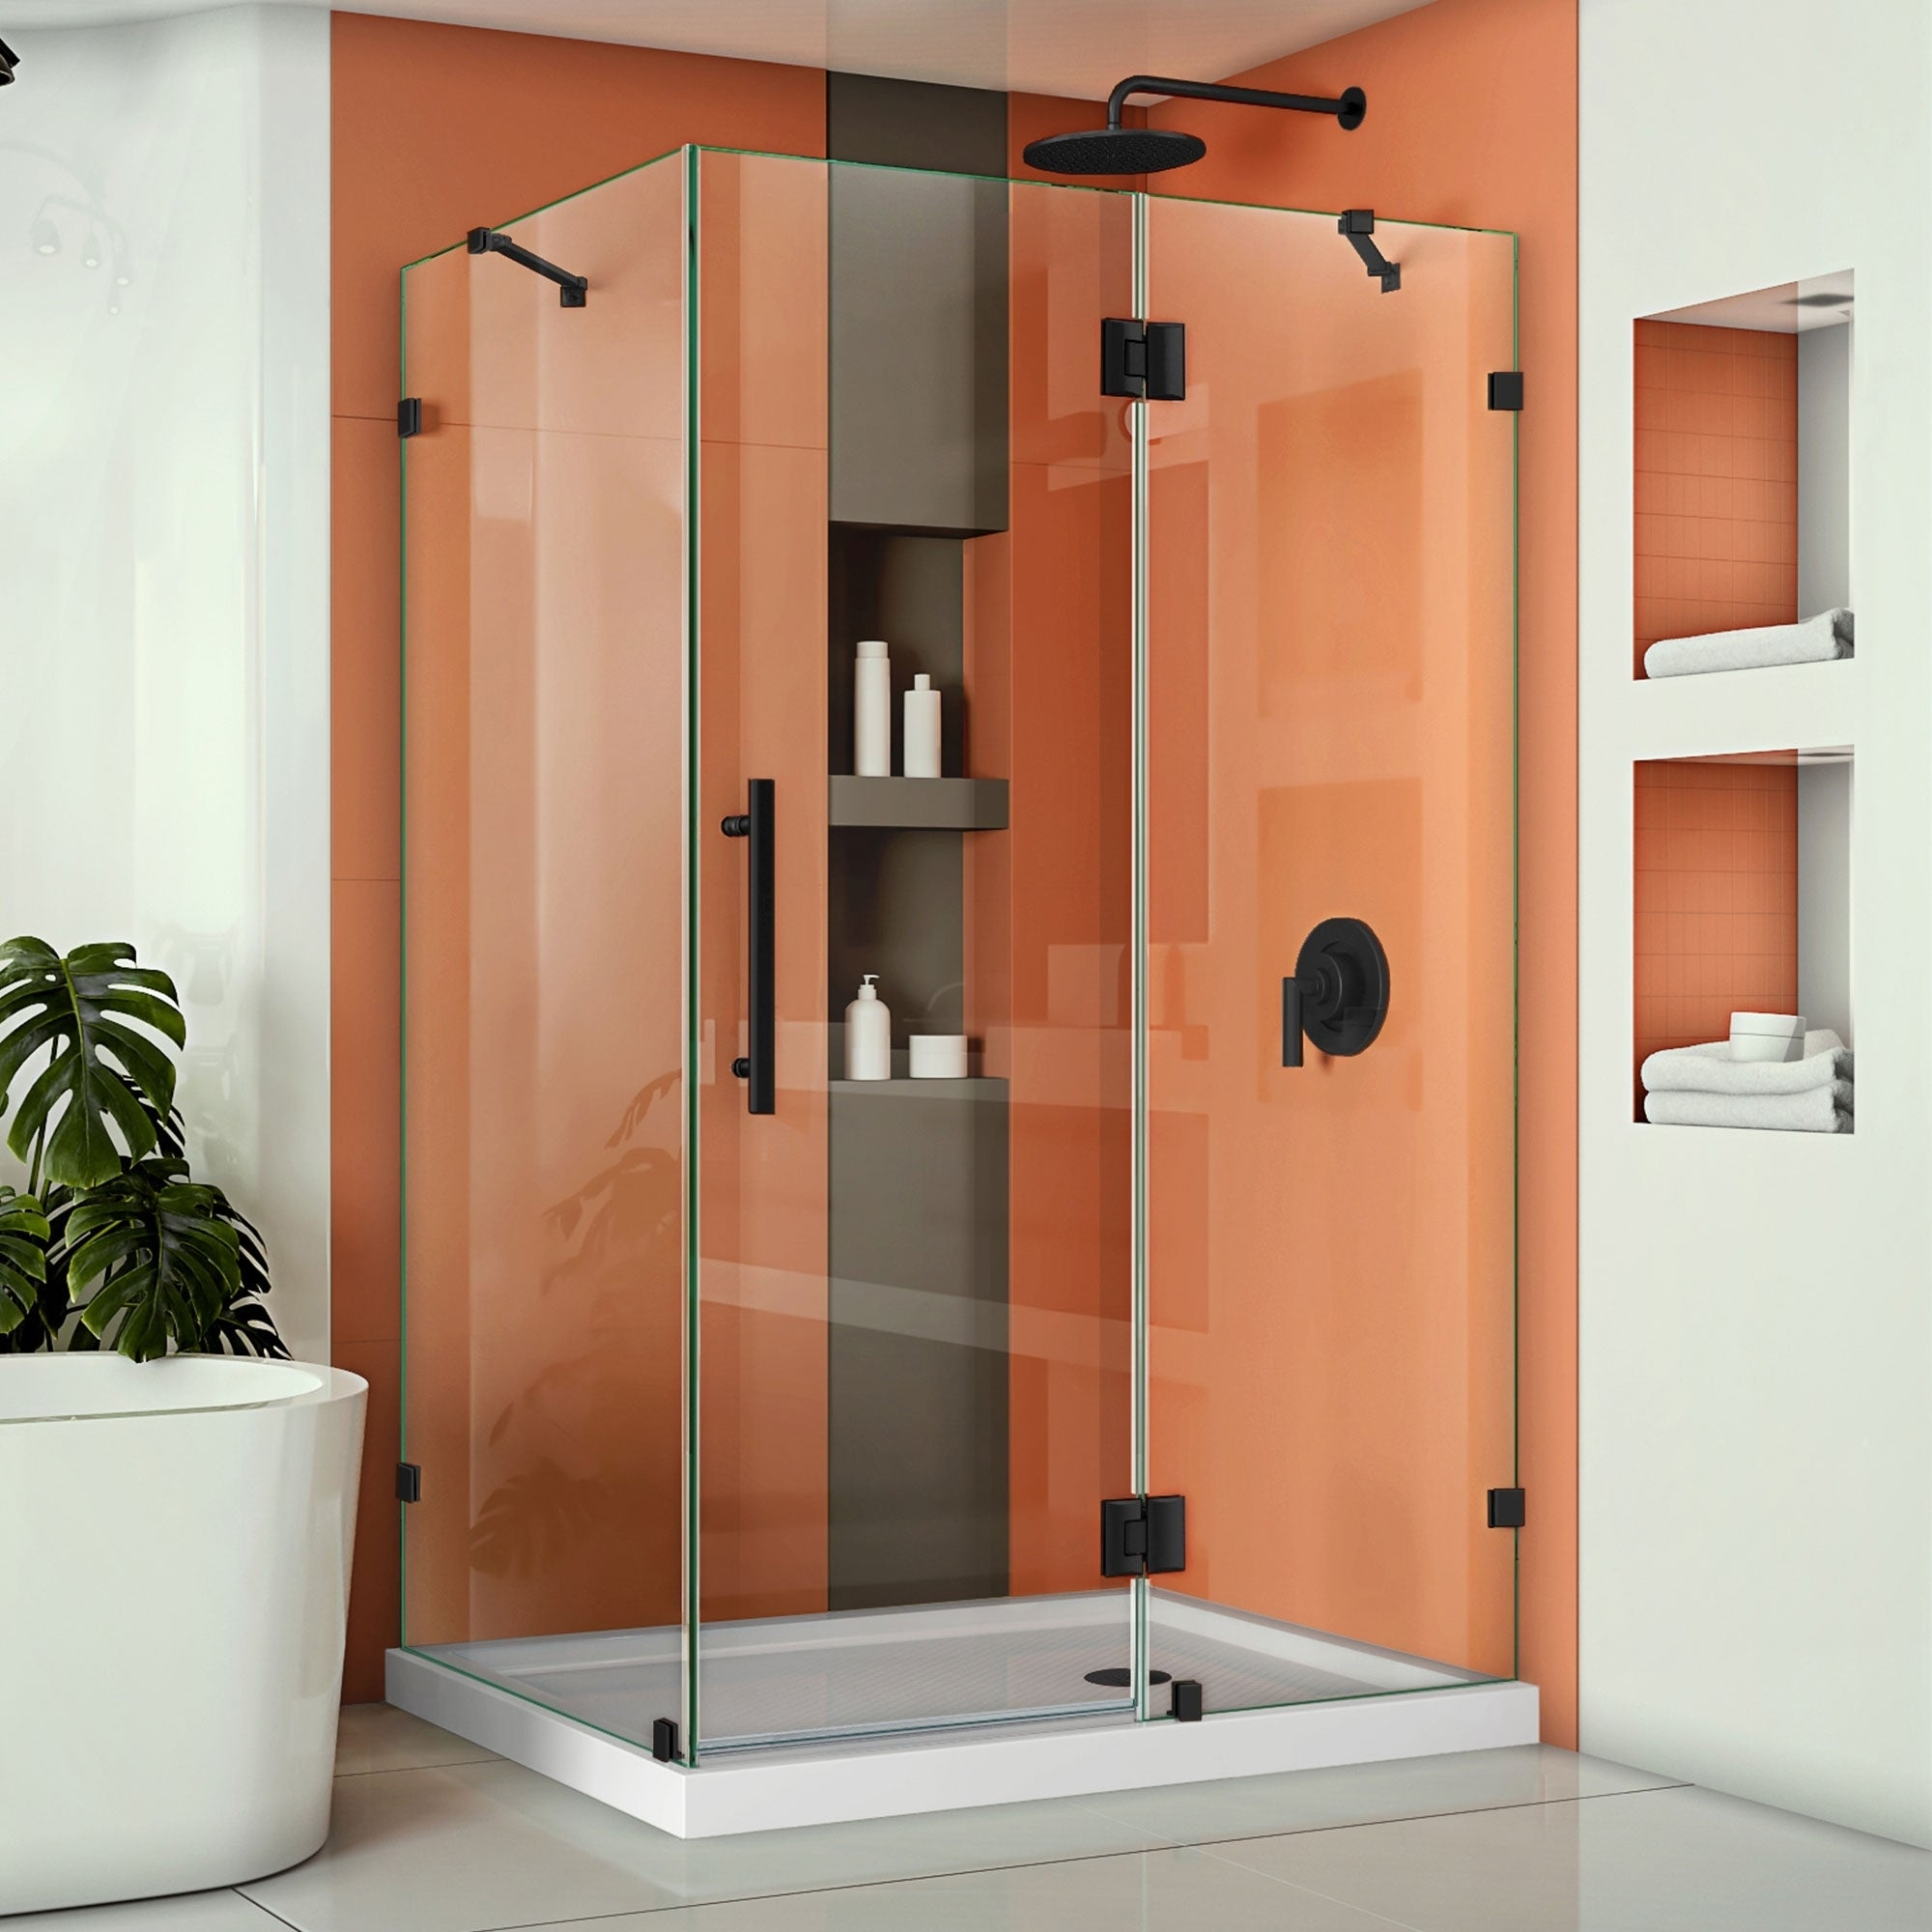 Dreamline Quatra Lux 34 1 4 In D X 46 3 8 W 72 H Hinged Shower Enclosure With Support Arms 25 38